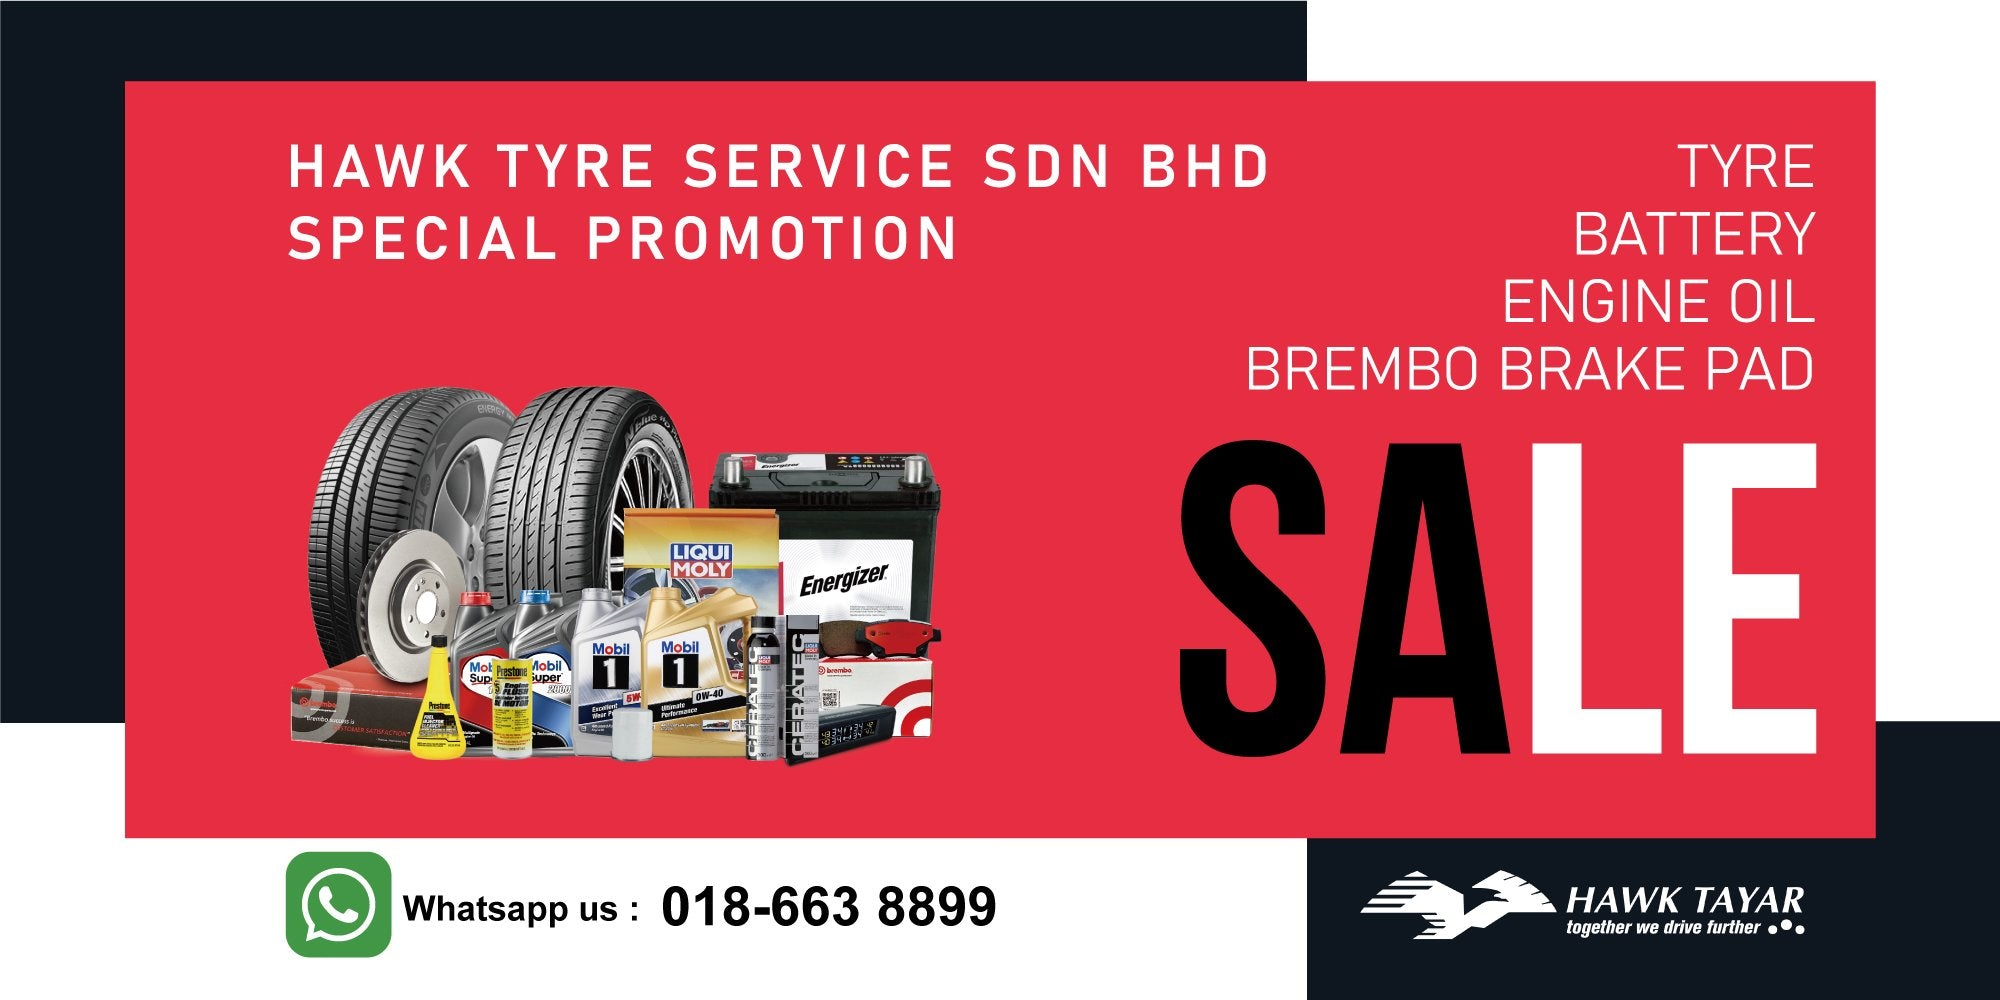 0% GST TAX HOLIDAY TYRE PROMOTION - HAWK TYRE